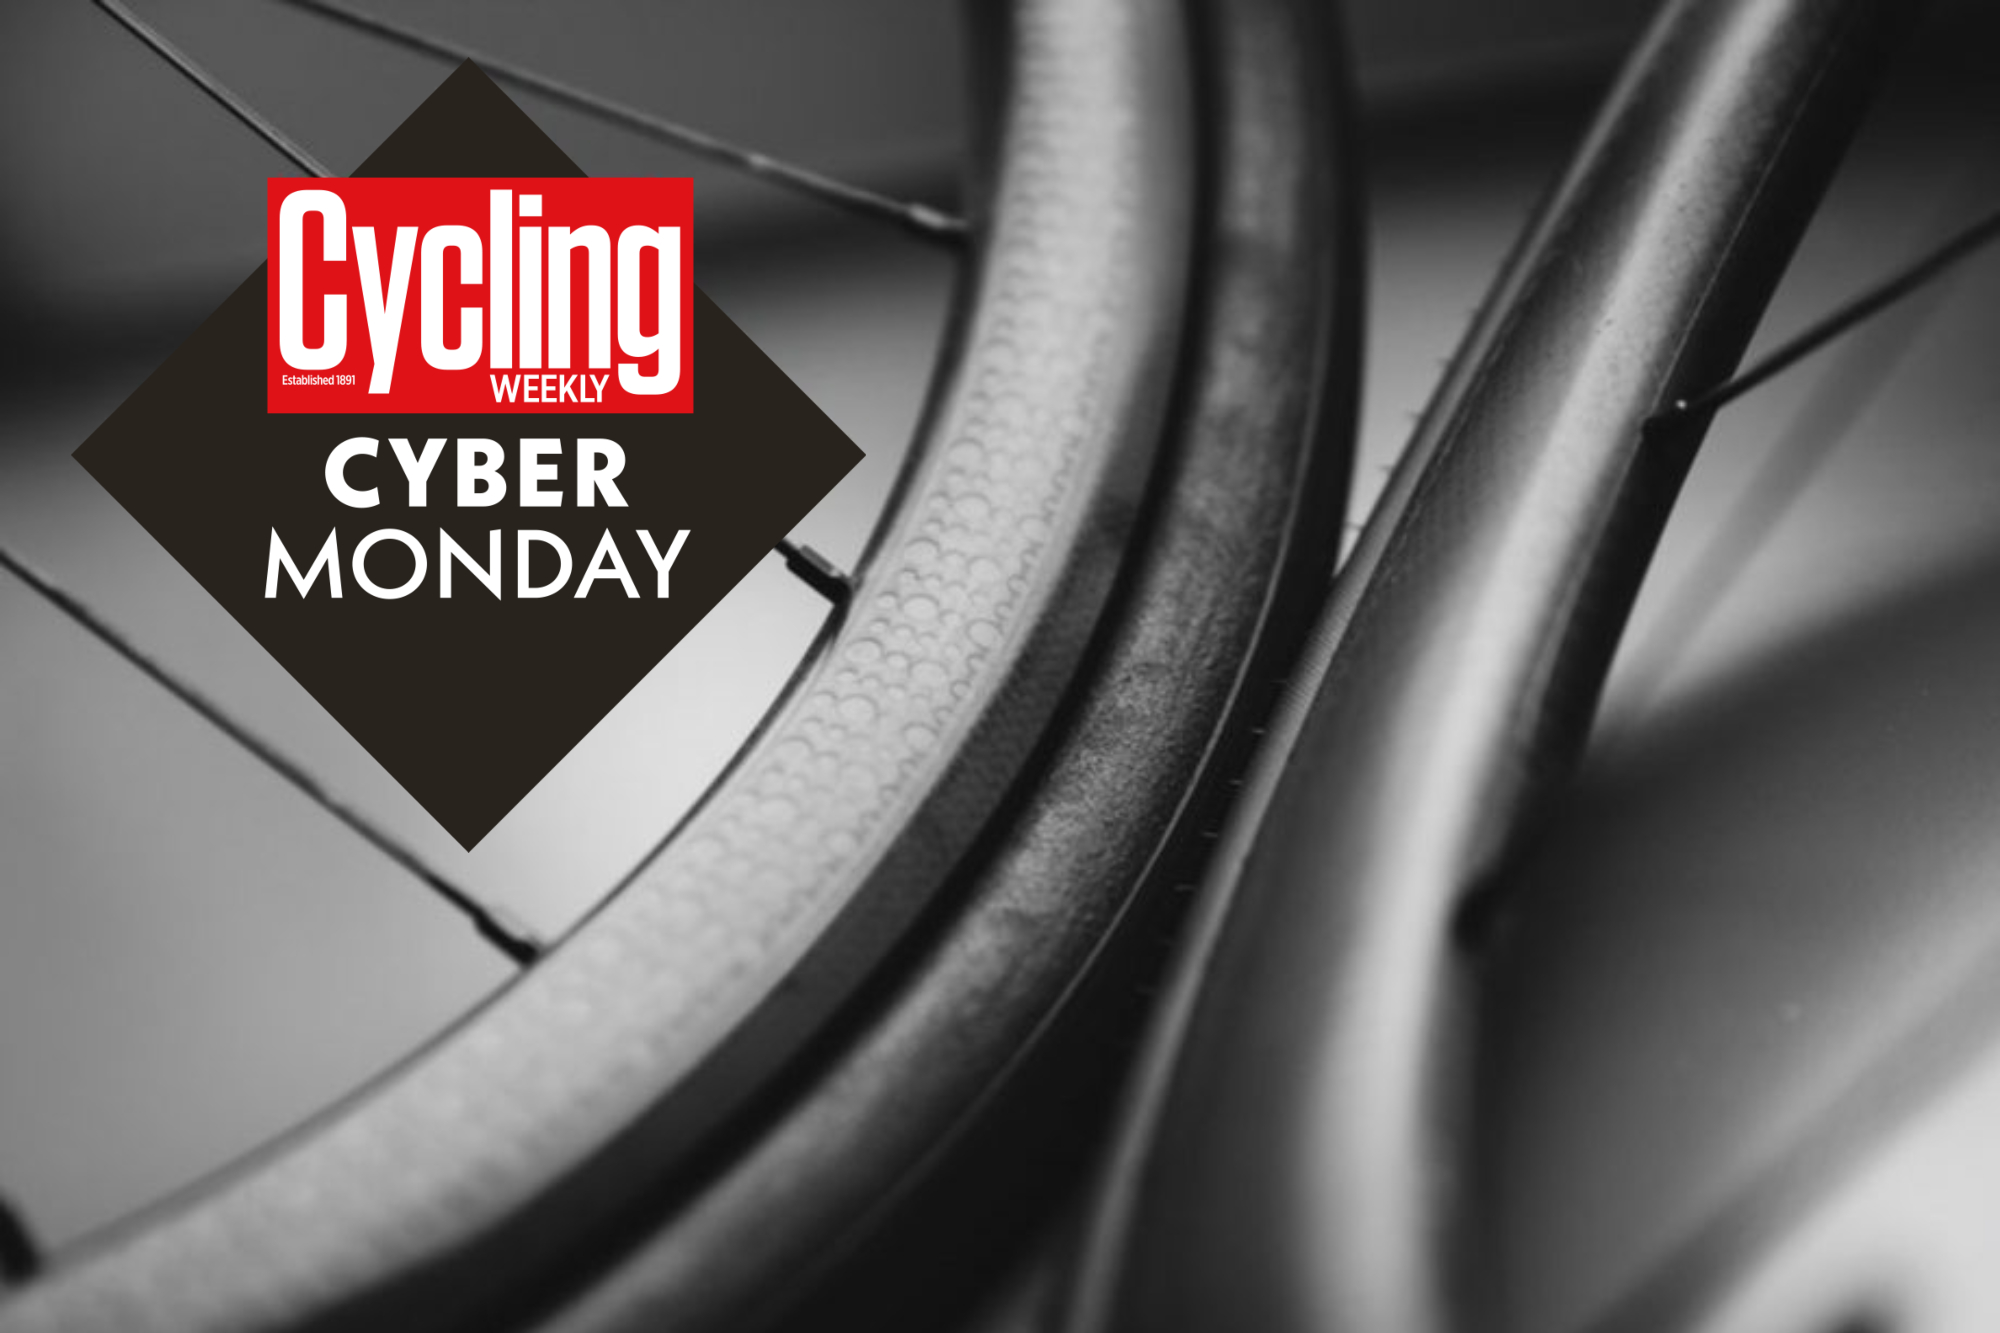 The best wheel deals: Amazing Cyber Monday 2020 discounts on Zipp, Campagnolo and more - Cycling Weekly